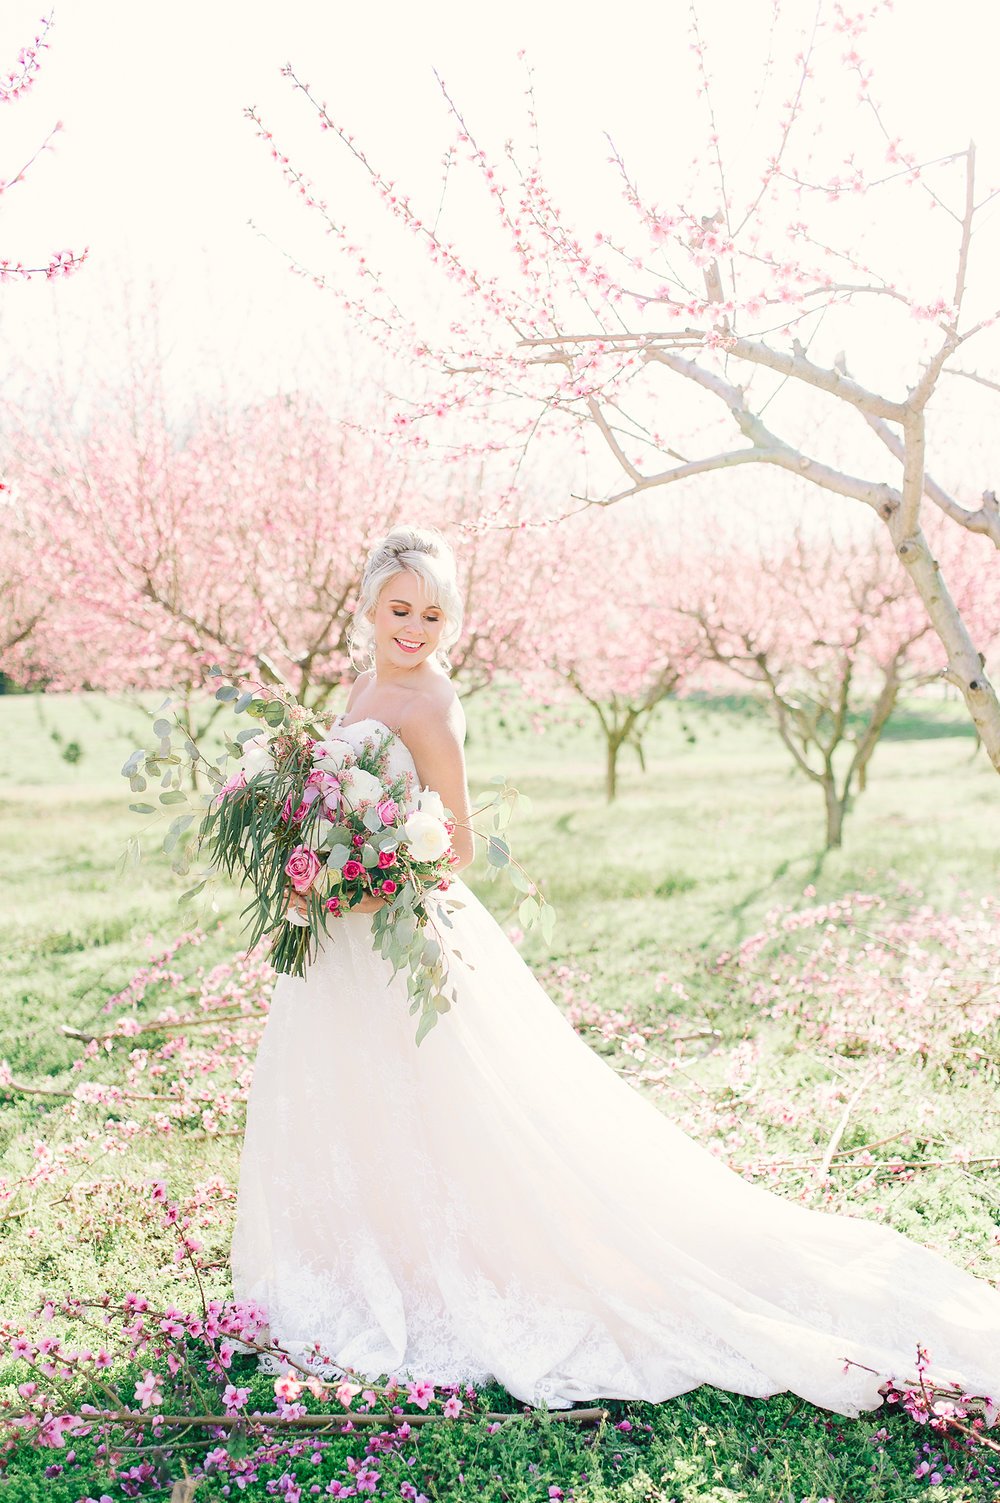 youseephotography_virginia_styledshoot_springwedding_blossoms  (19).jpg